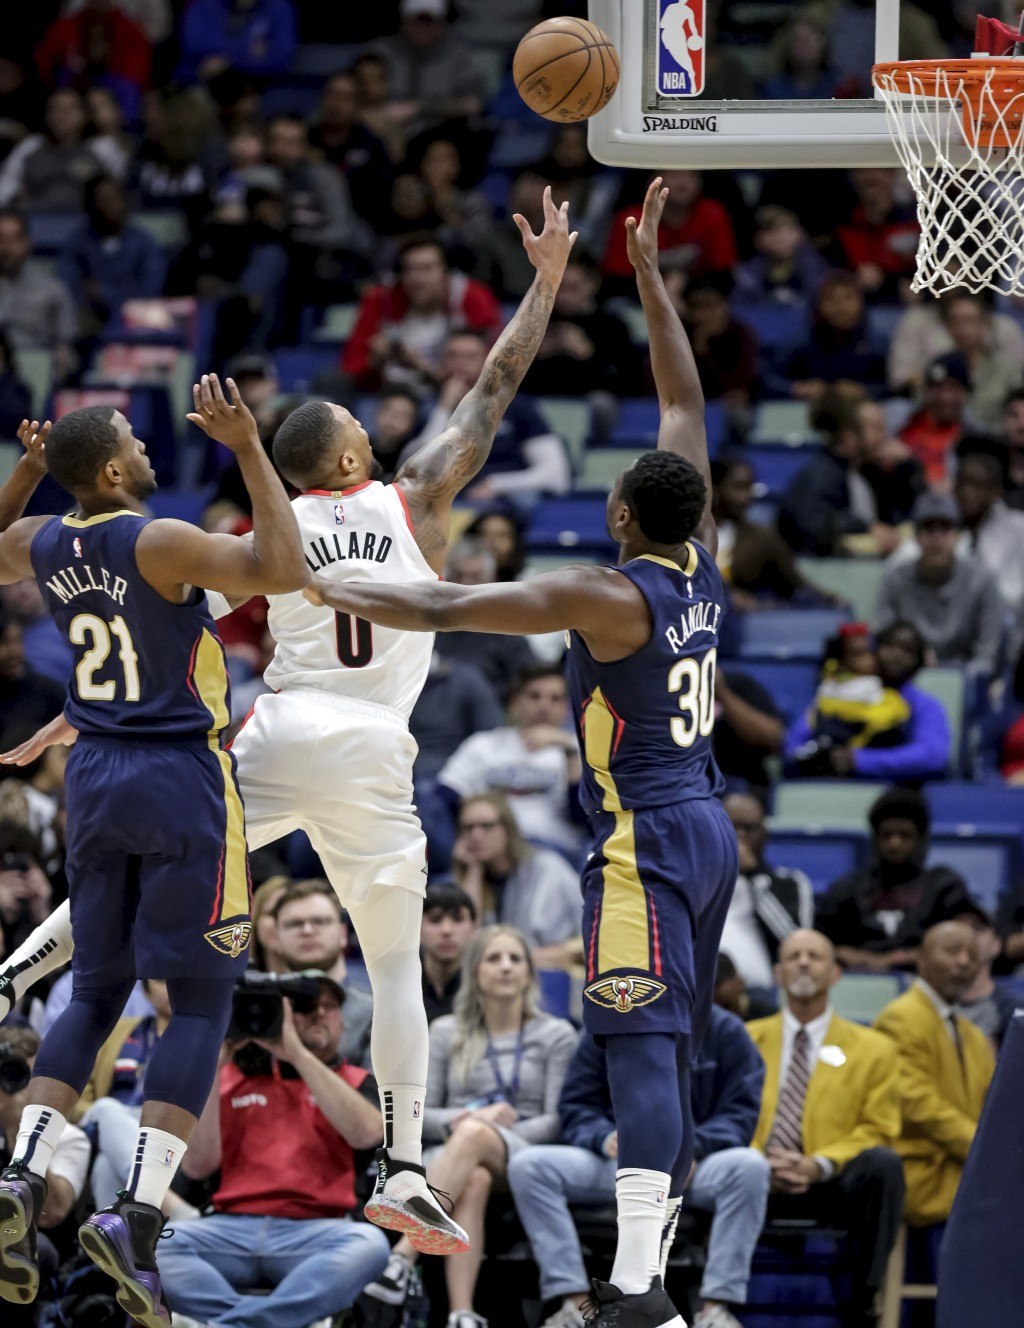 Portland Trail Blazers guard Damian Lillard (0) shoots over New Orleans Pelicans center Julius Randle (30) and forward Darius Miller (21) in the first